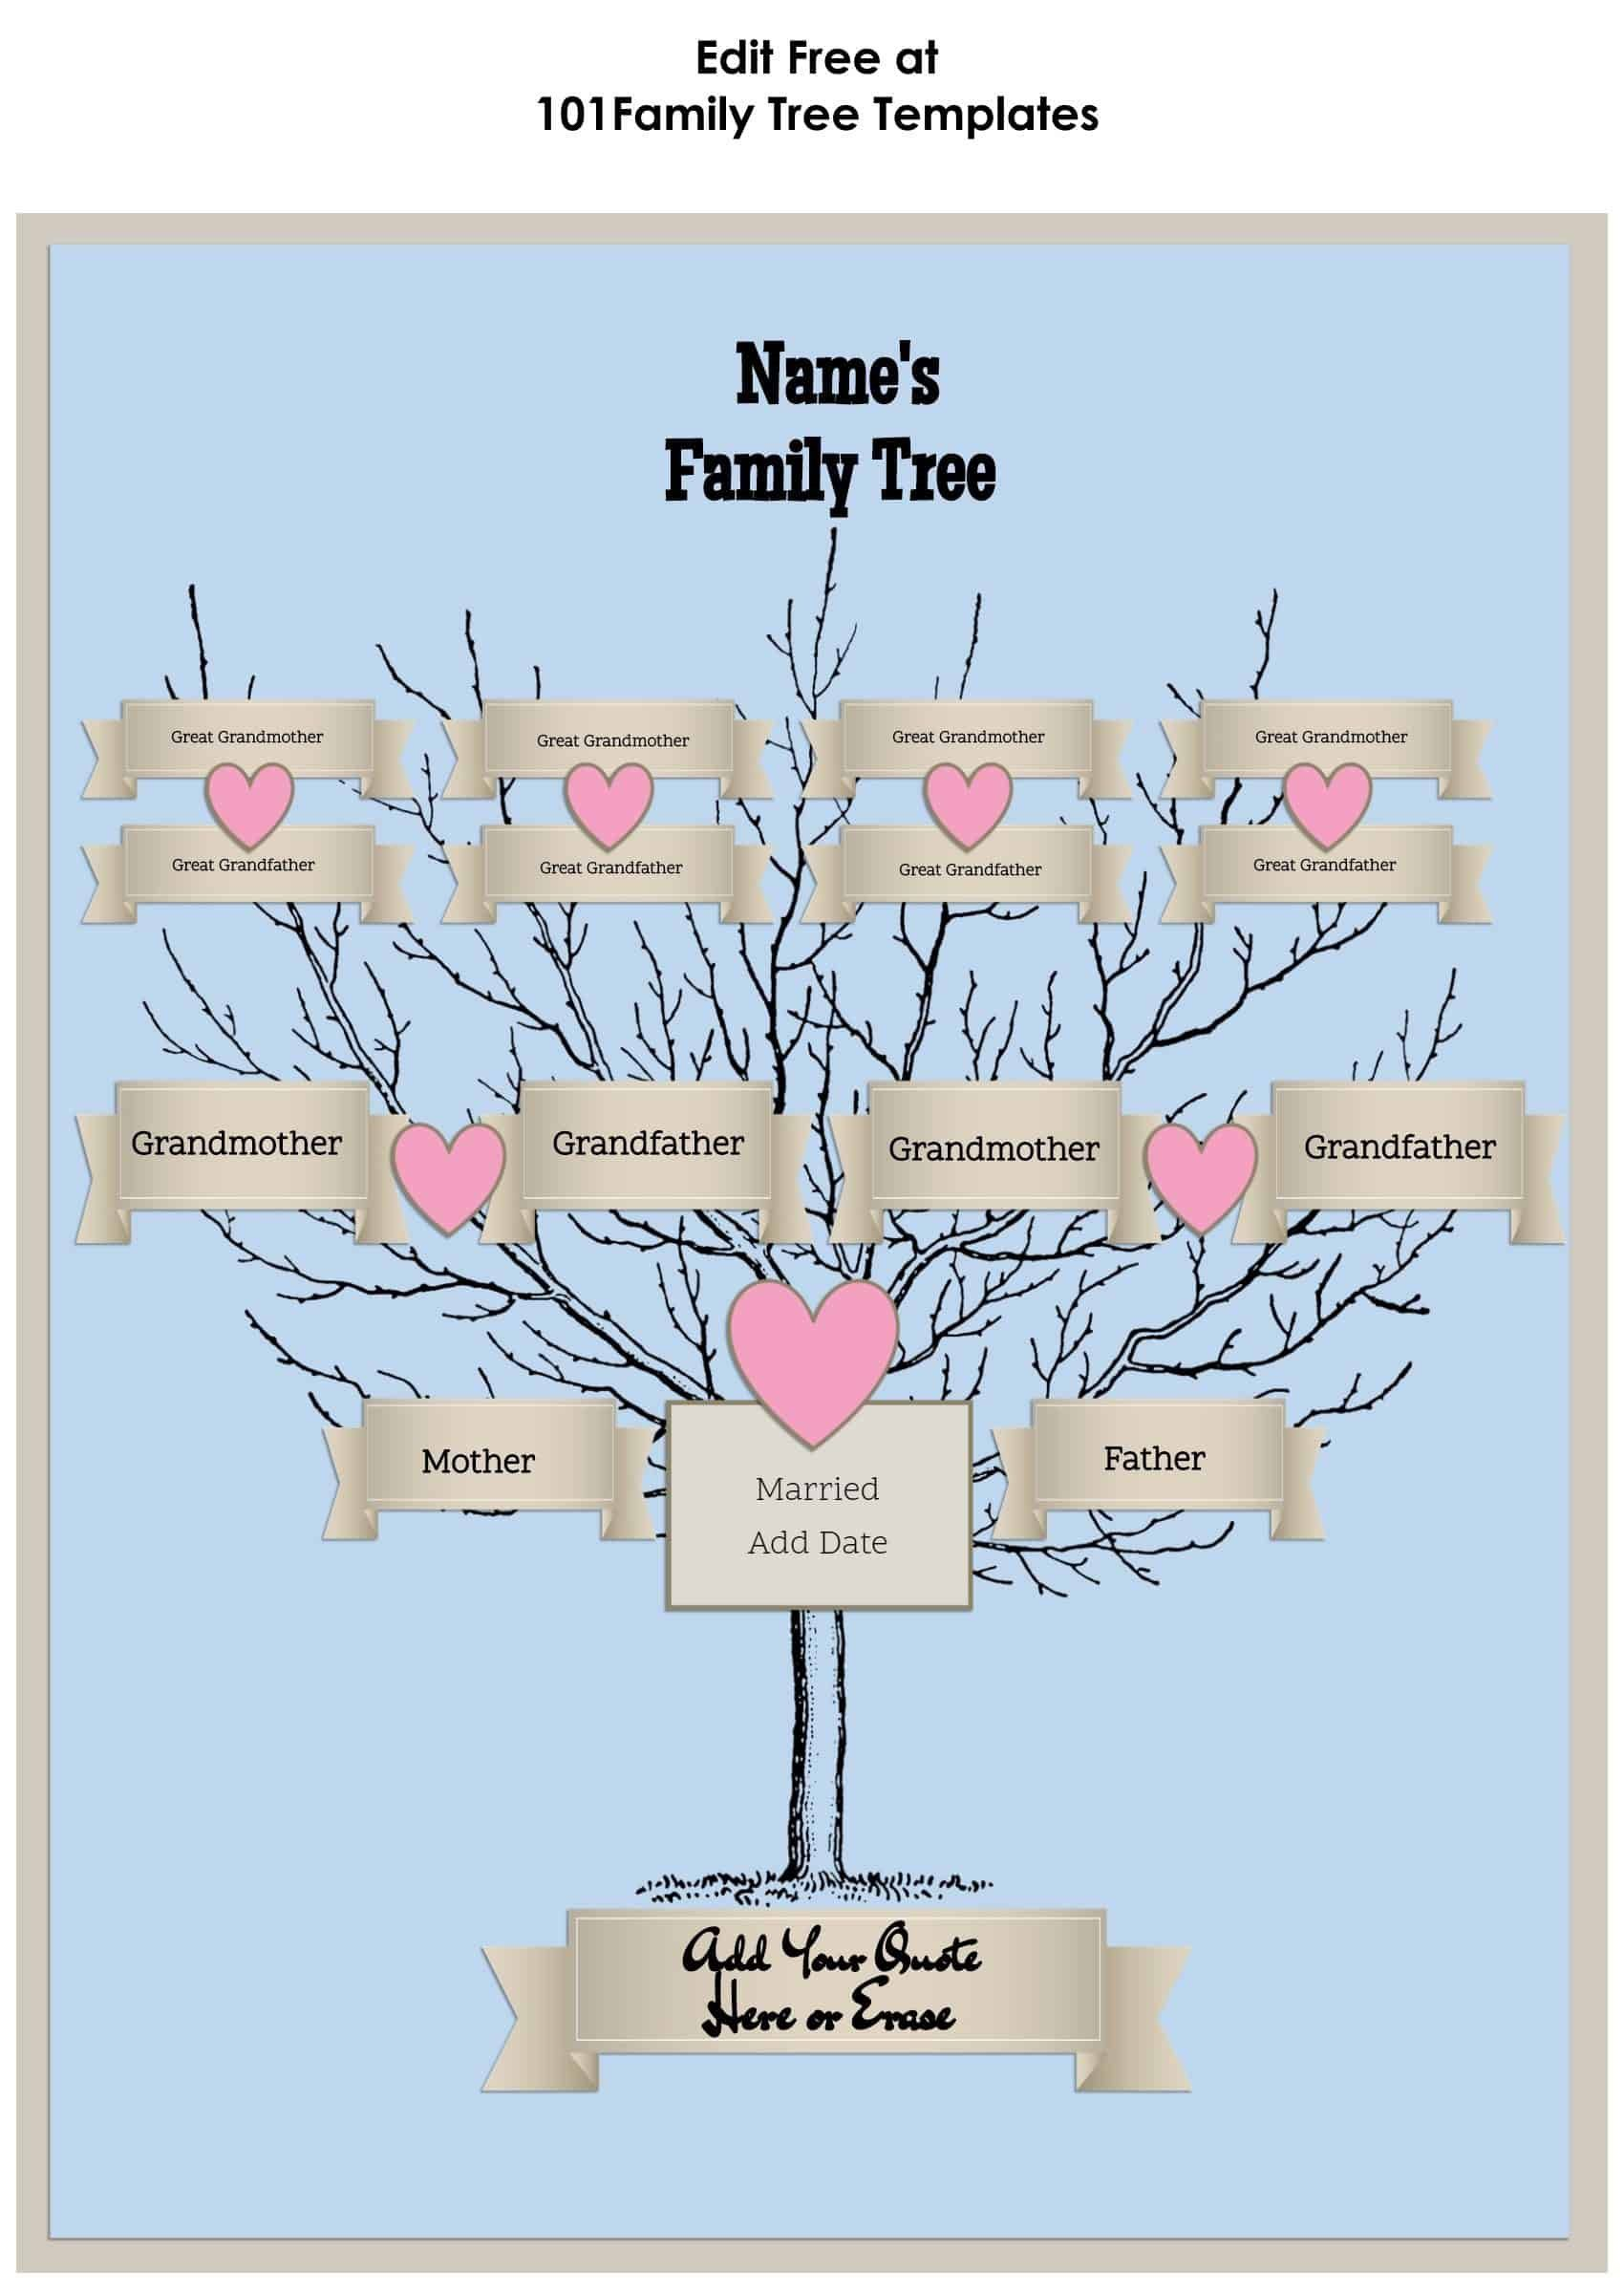 007 Unique Editable Family Tree Template Online Free High Resolution Full